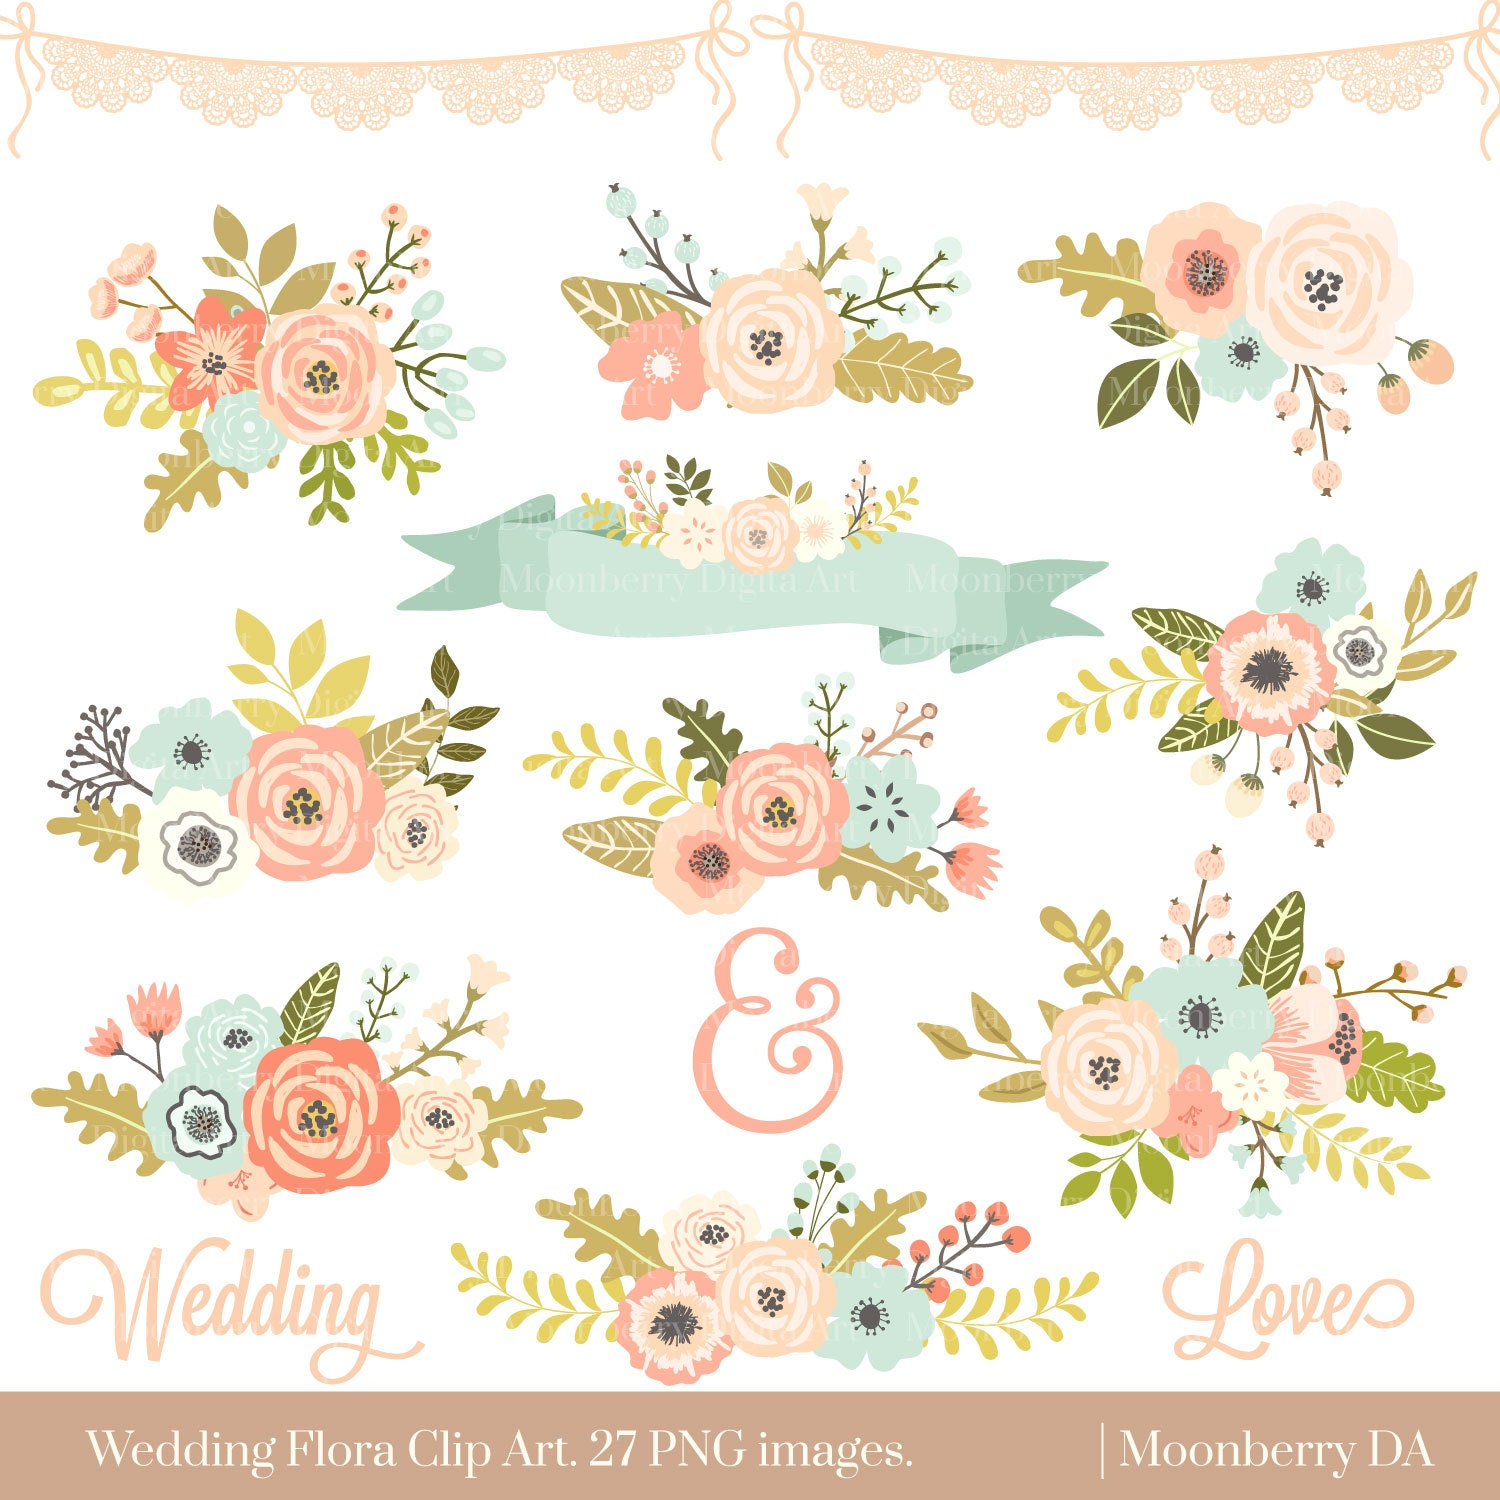 Wedding Floral Clipart Floral Clipart Flowers